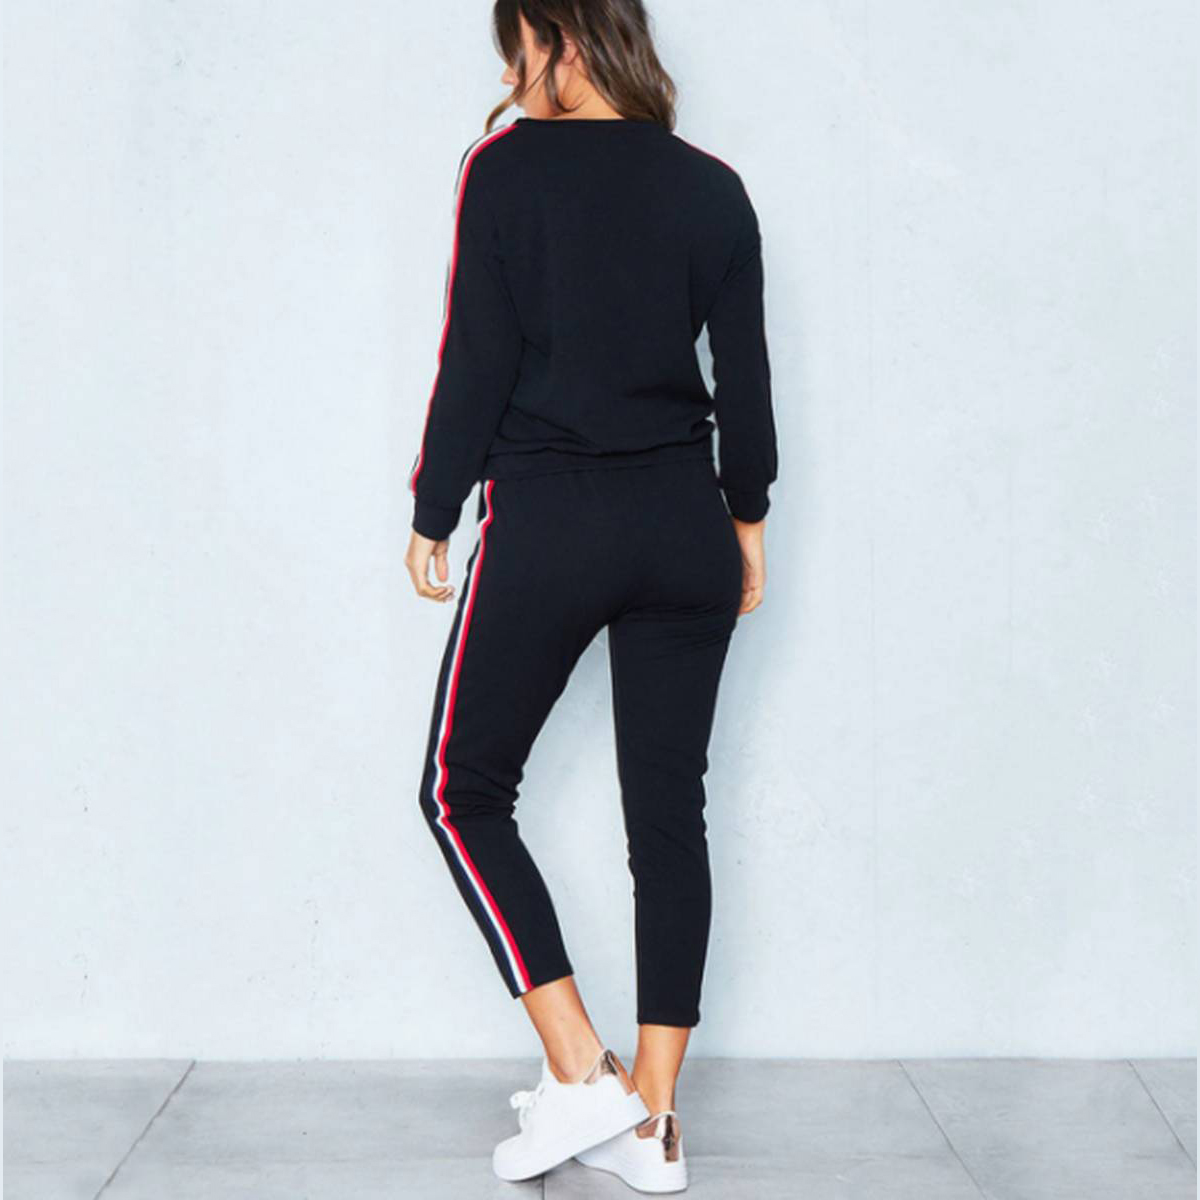 Black Womens Ladies Long Sleeve Lounge Wear Tracksuit Co Ord Set Casual Gym Suit